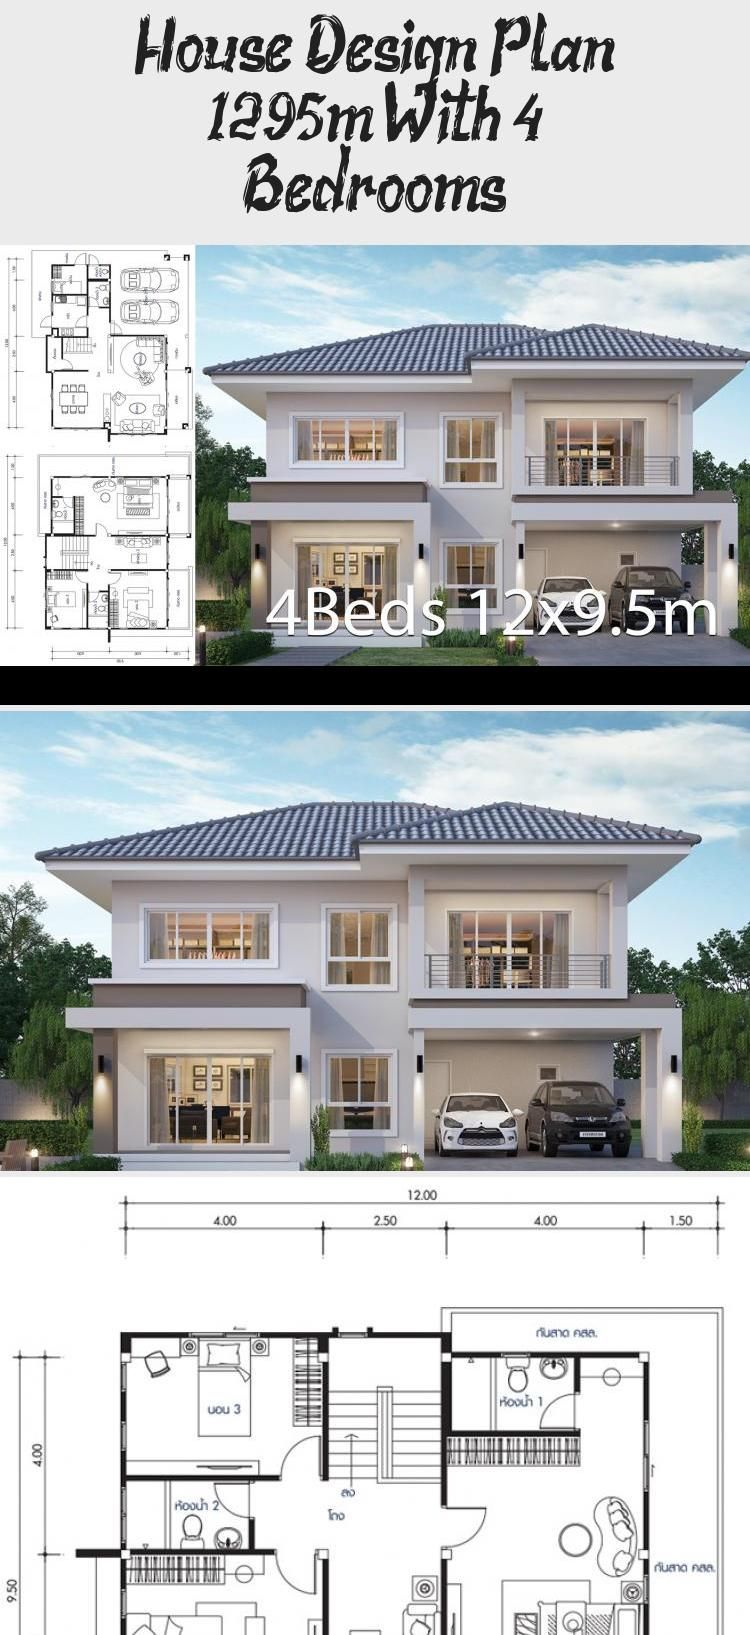 House Design Plan 12x9 5m With 4 Bedrooms Home Design With Plansearch Houseplansarchitecture Houseplansonesto In 2020 Home Design Plans Craftsman House Plans House